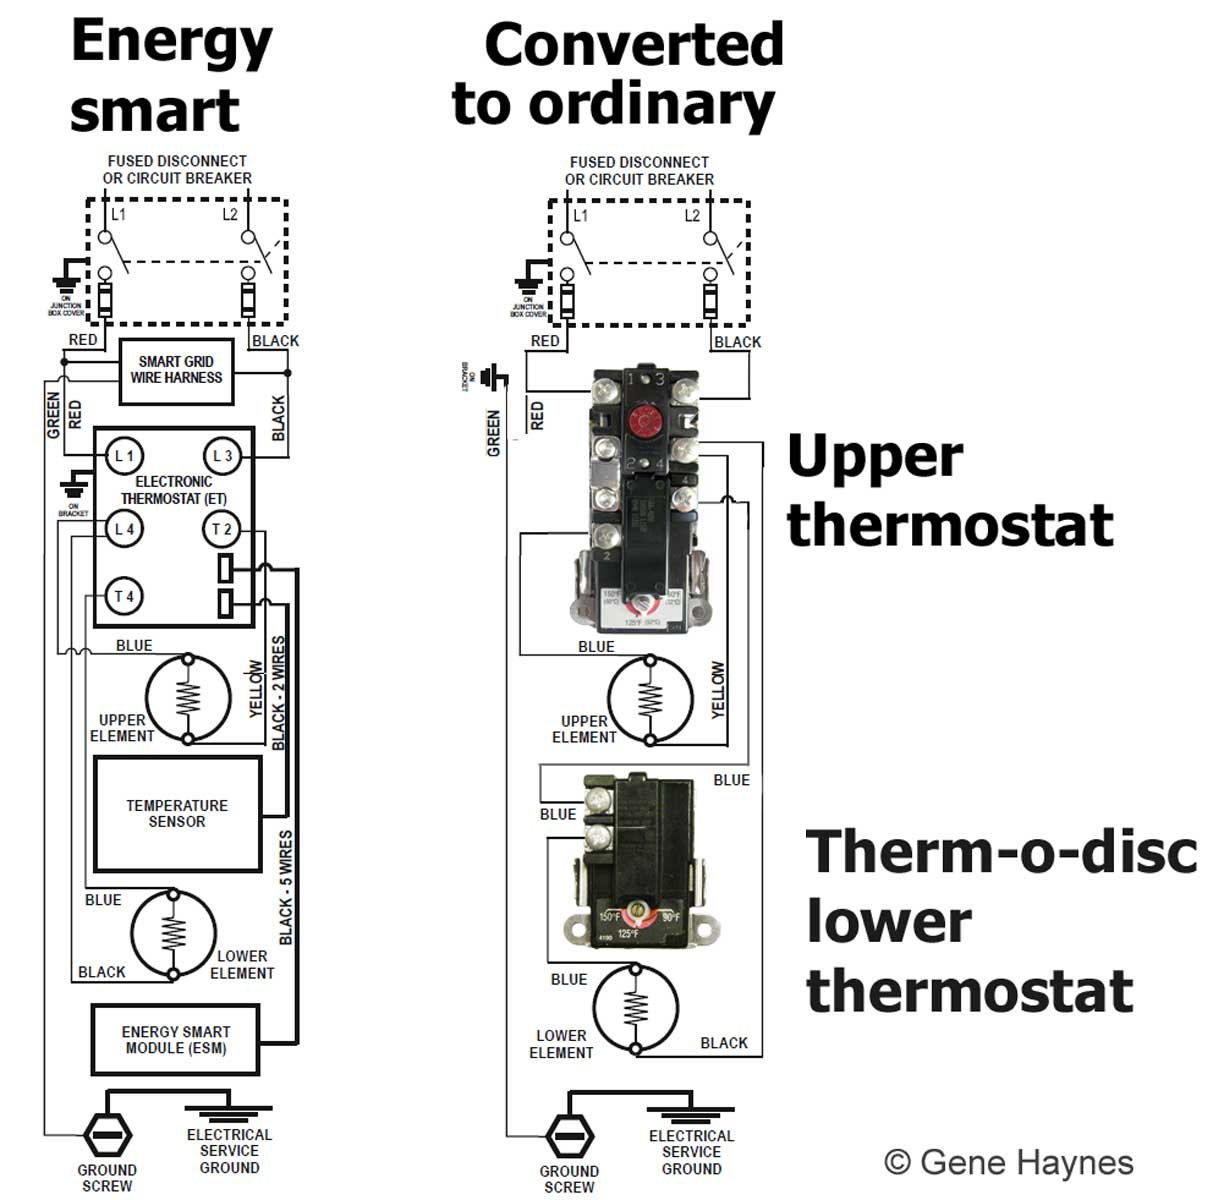 How To Convert Energy Smart Water Heater To Ordinary Water